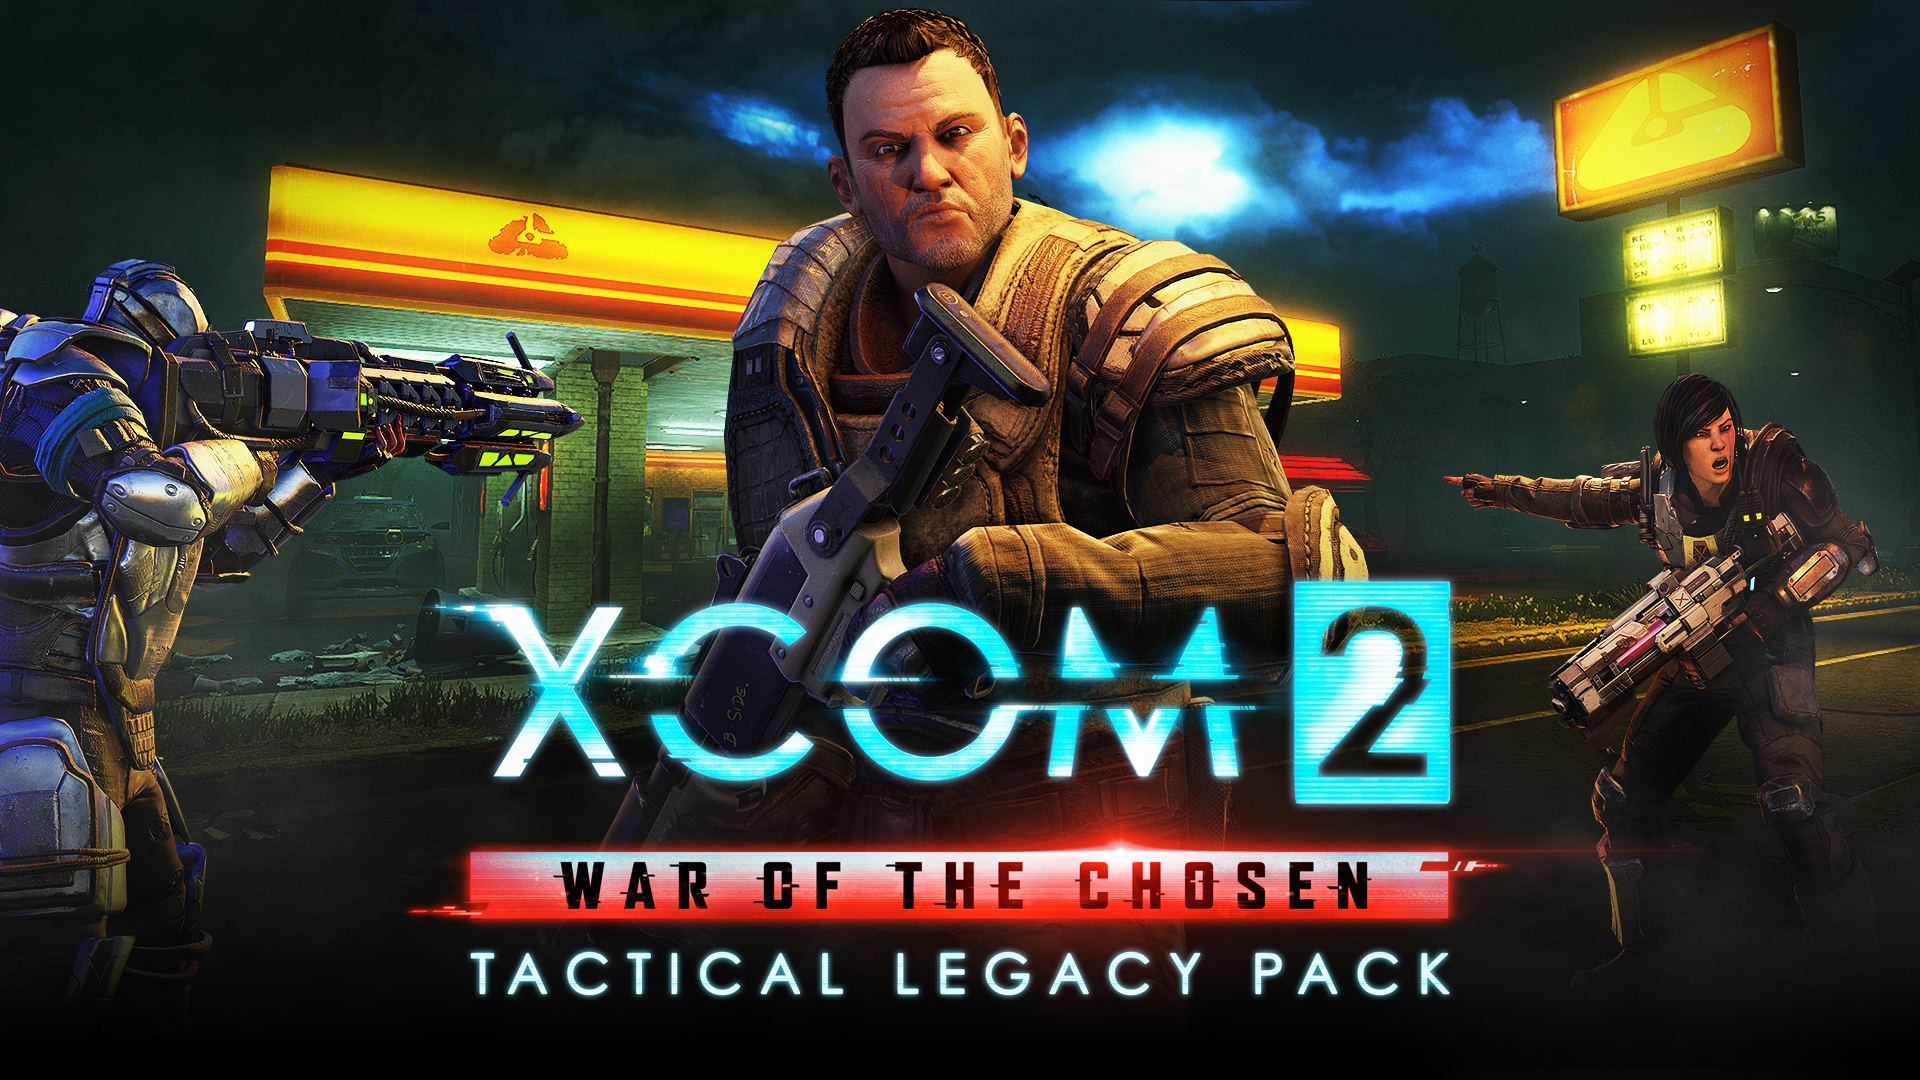 XCOM 2: War of the Chosen – Tactical Legacy Pack DLC Launches on Oct 9 for PC